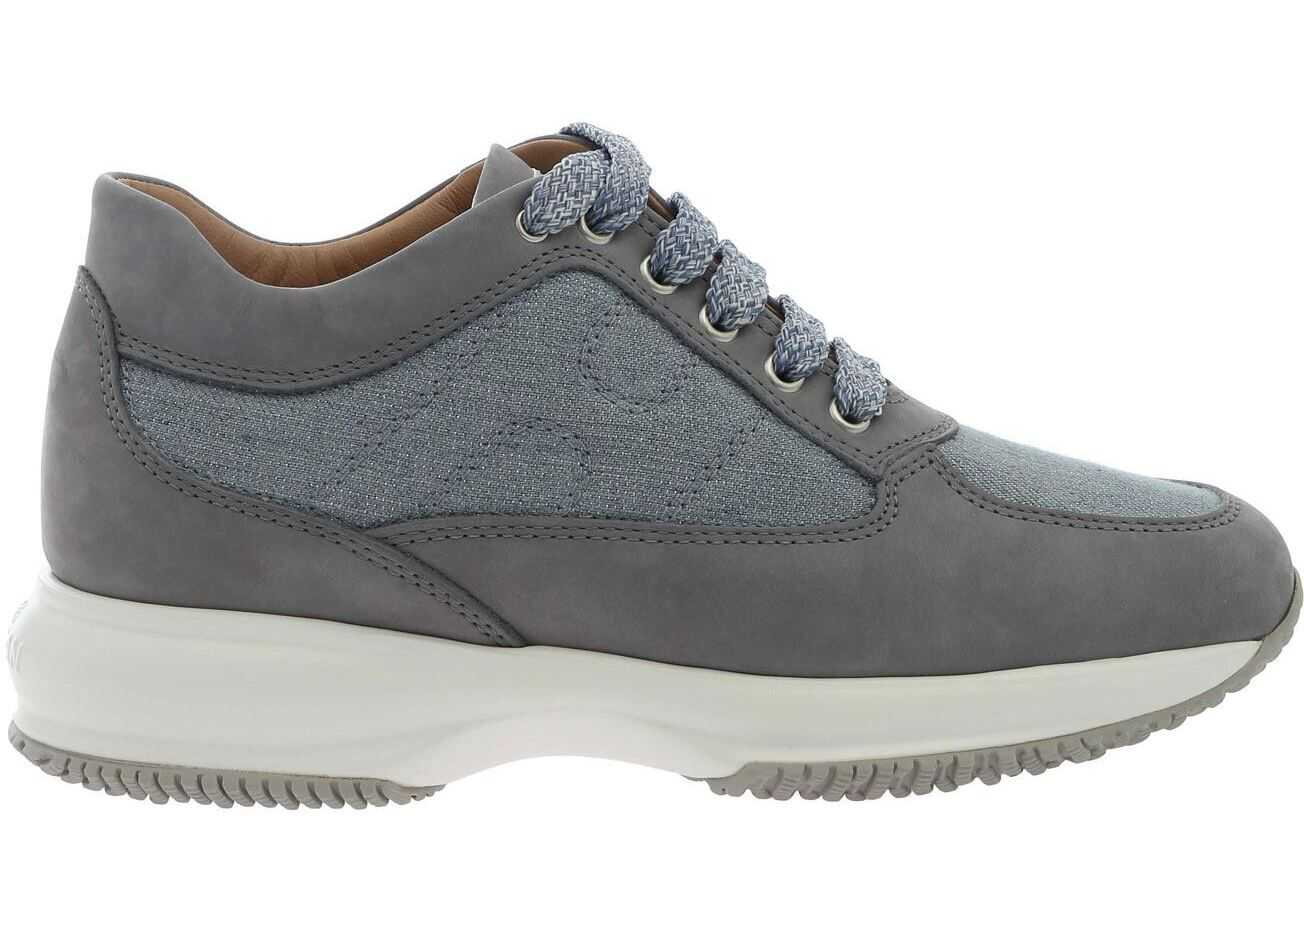 Hogan Interactive Sneakers In Grey With Lamé Inserts Grey